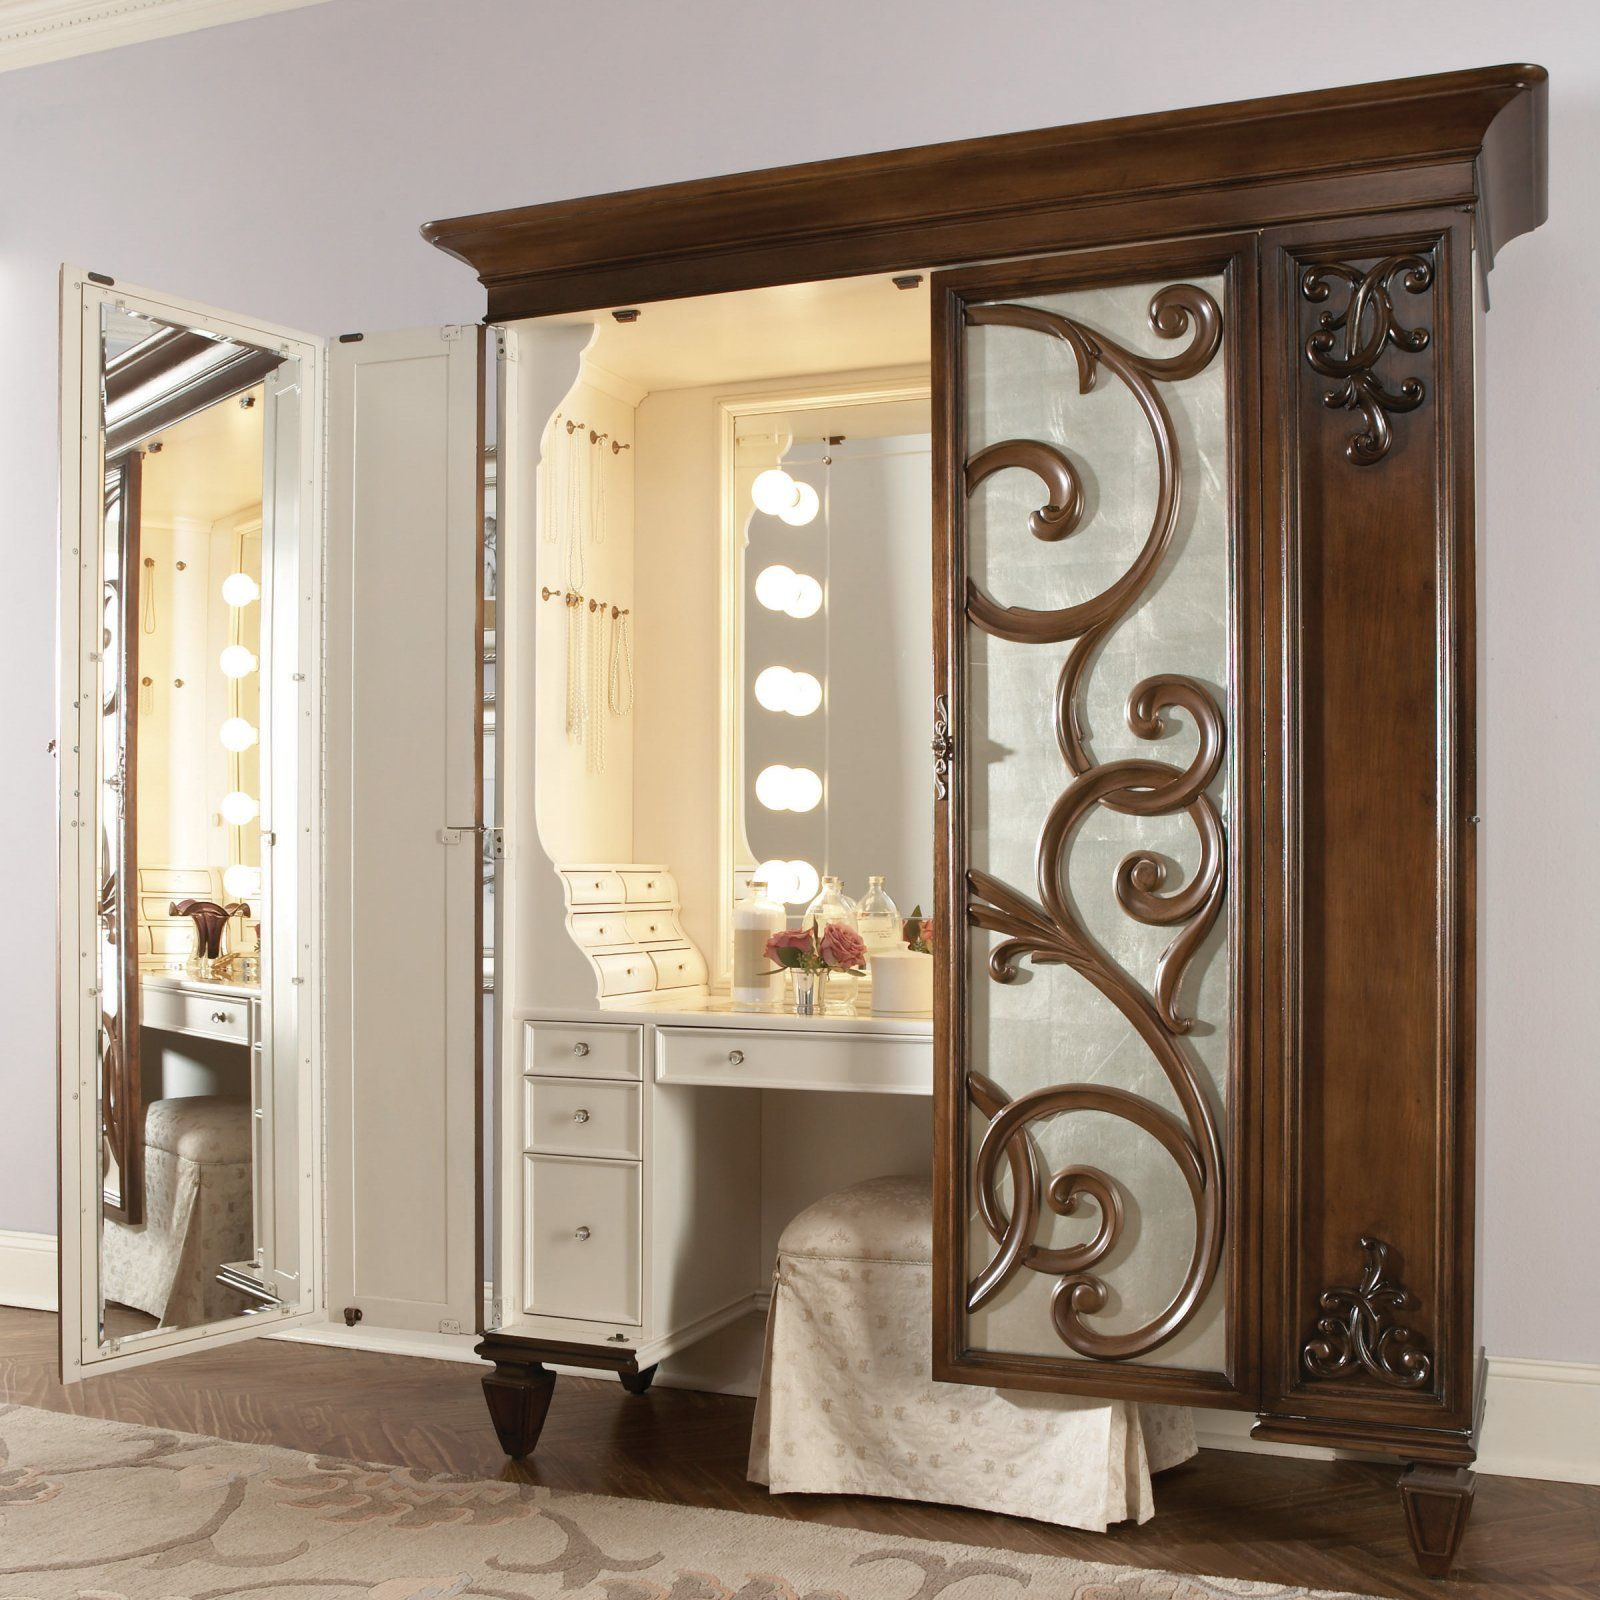 Merveilleux Jessica McClintock Couture Bedroom Vanity Set   Bedroom Vanity Sets At  Simply Vanities